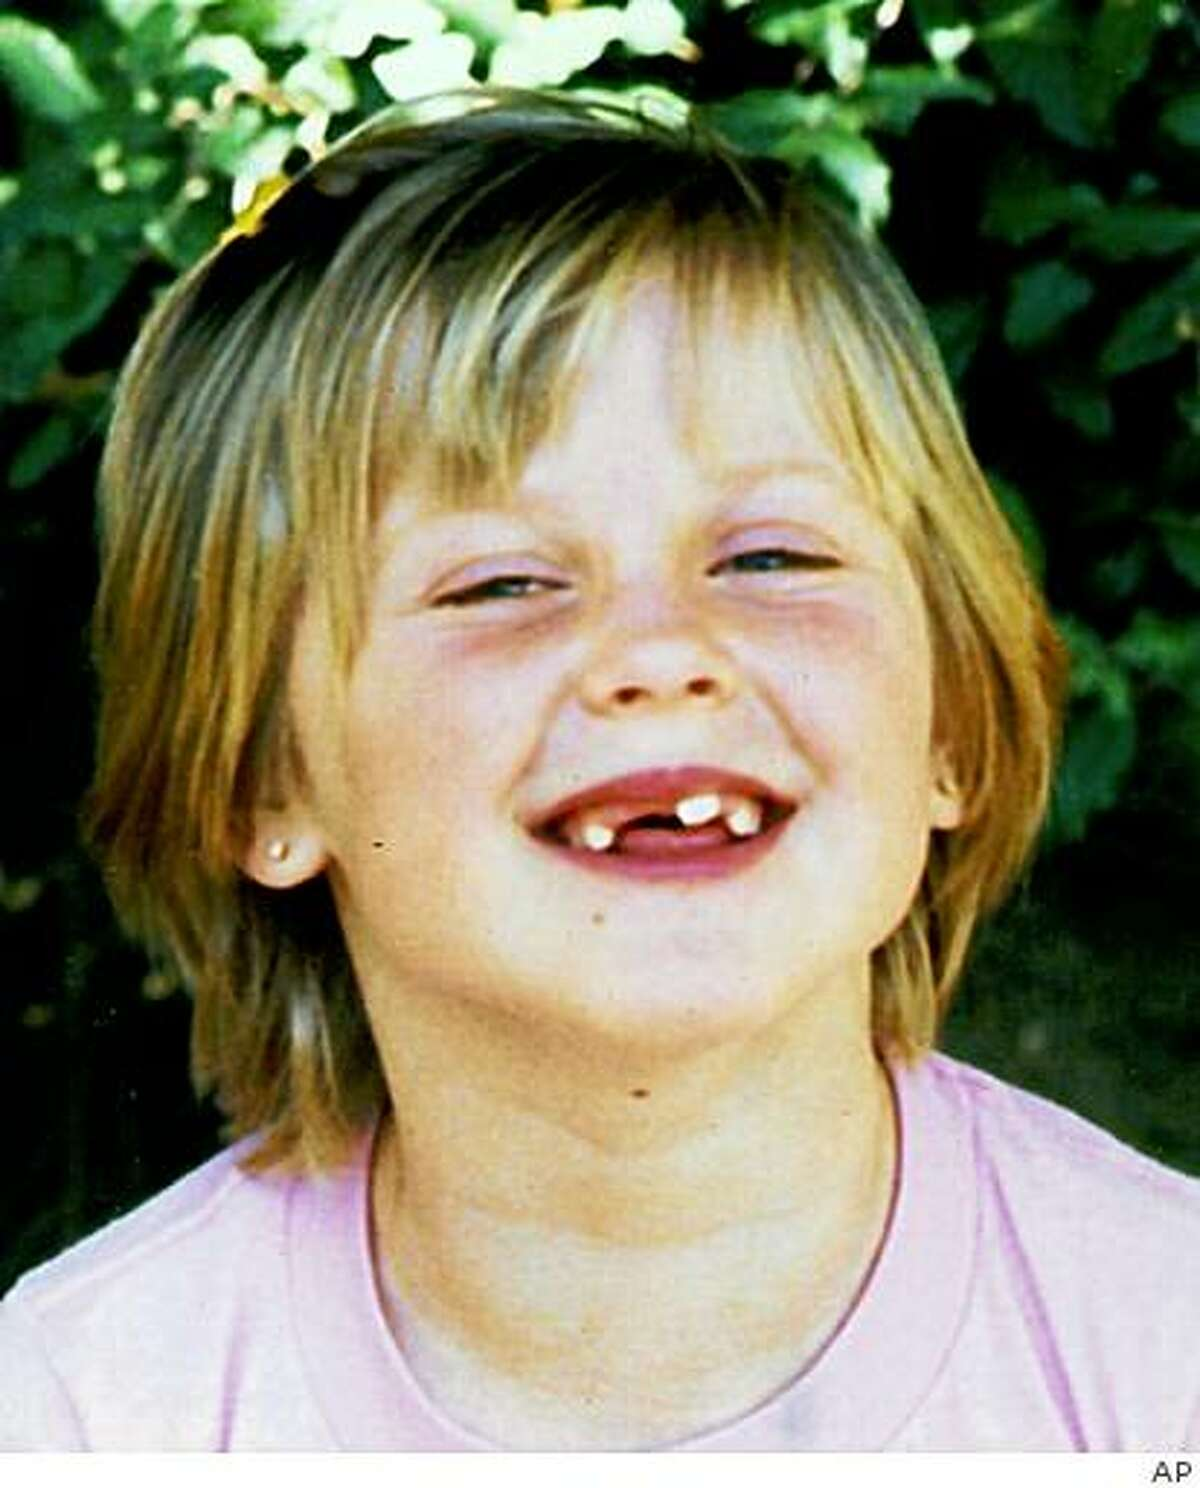 This 1988 photo provided by the family shows Amber Swartz. Police said Monday, July 6, 2009, that they've solved the mystery of what happened to Amber, who disappeared after going out to jump rope in front of her home 21 years ago. Pinole Police Chief Paul Clancy said Curtis Dean Anderson confessed in 2007, a month before dying in prison, that he kidnapped and killed Amber. (AP Photo/Family photo via Contra Costa Times)